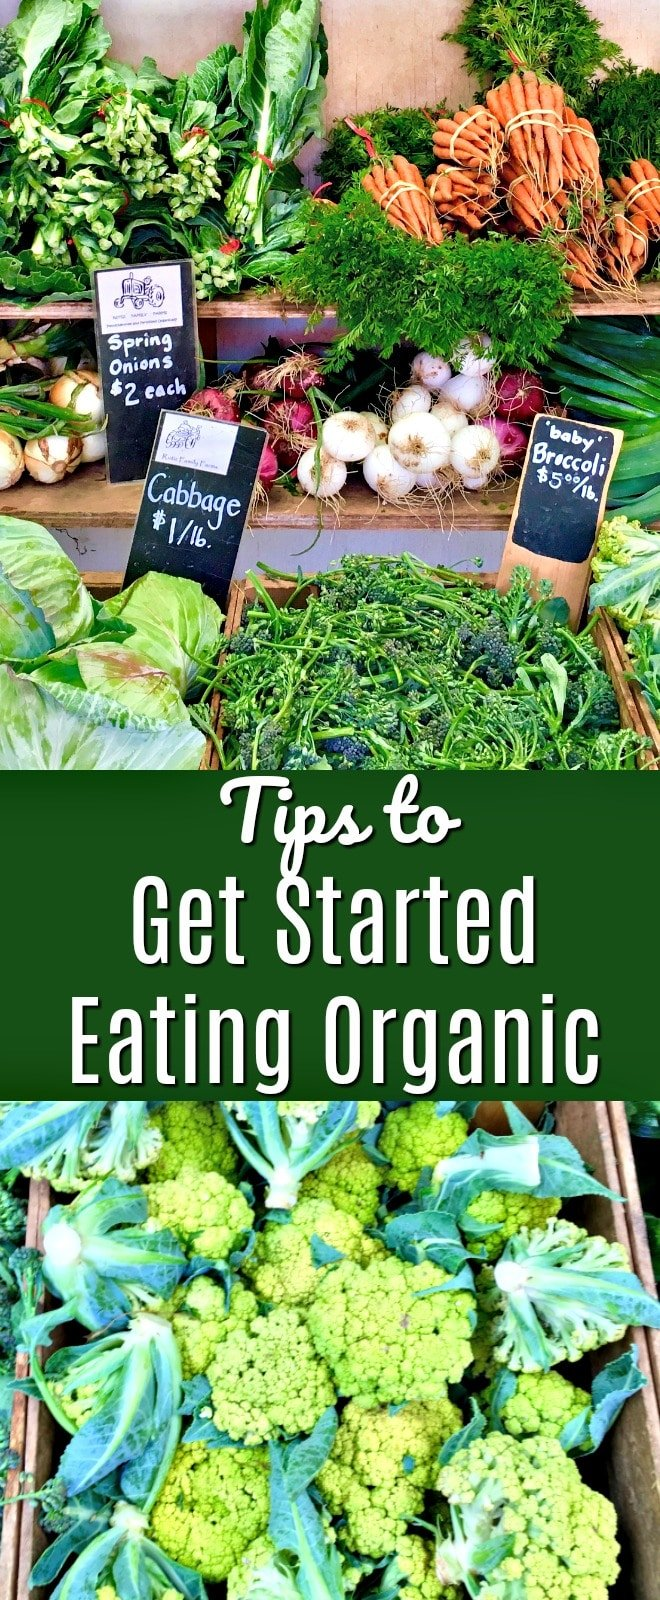 The Ultimate Guide to Eating Organic on a Budget. The Difference Between Surviving and Thriving Eating Organic on a Budget. There's a big difference between just surviving for a month on a tight budget and thriving on organic foods while sticking to a thrifty budget.